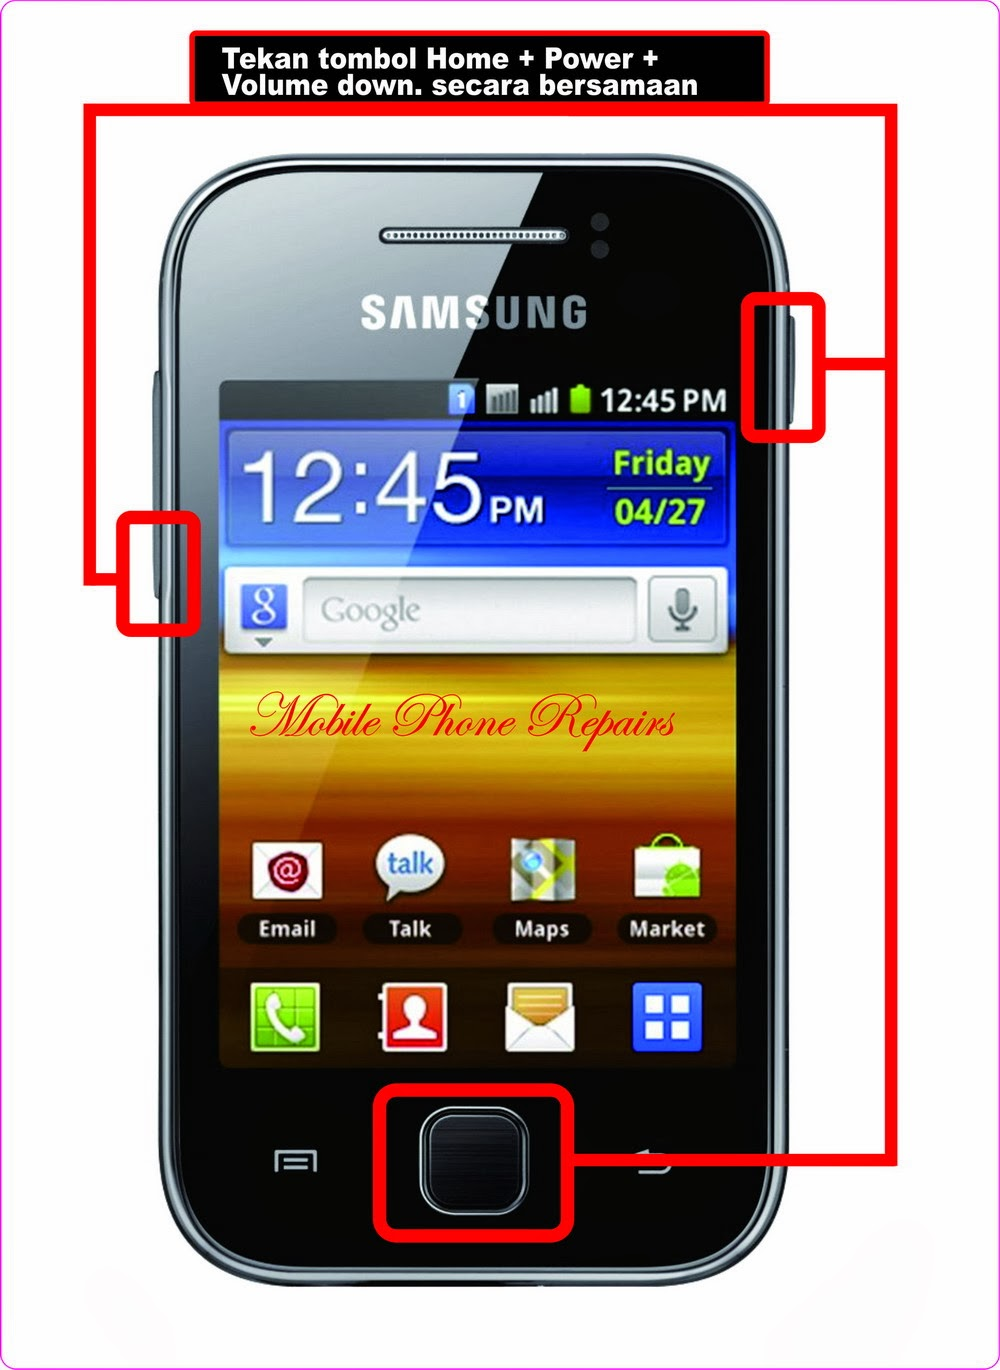 Cara Flash Samsung Gt S5312 : flash, samsung, s5312, Flash, SAMSUNG, YOUNG, S5360, Tested, SERVIS, MURAH